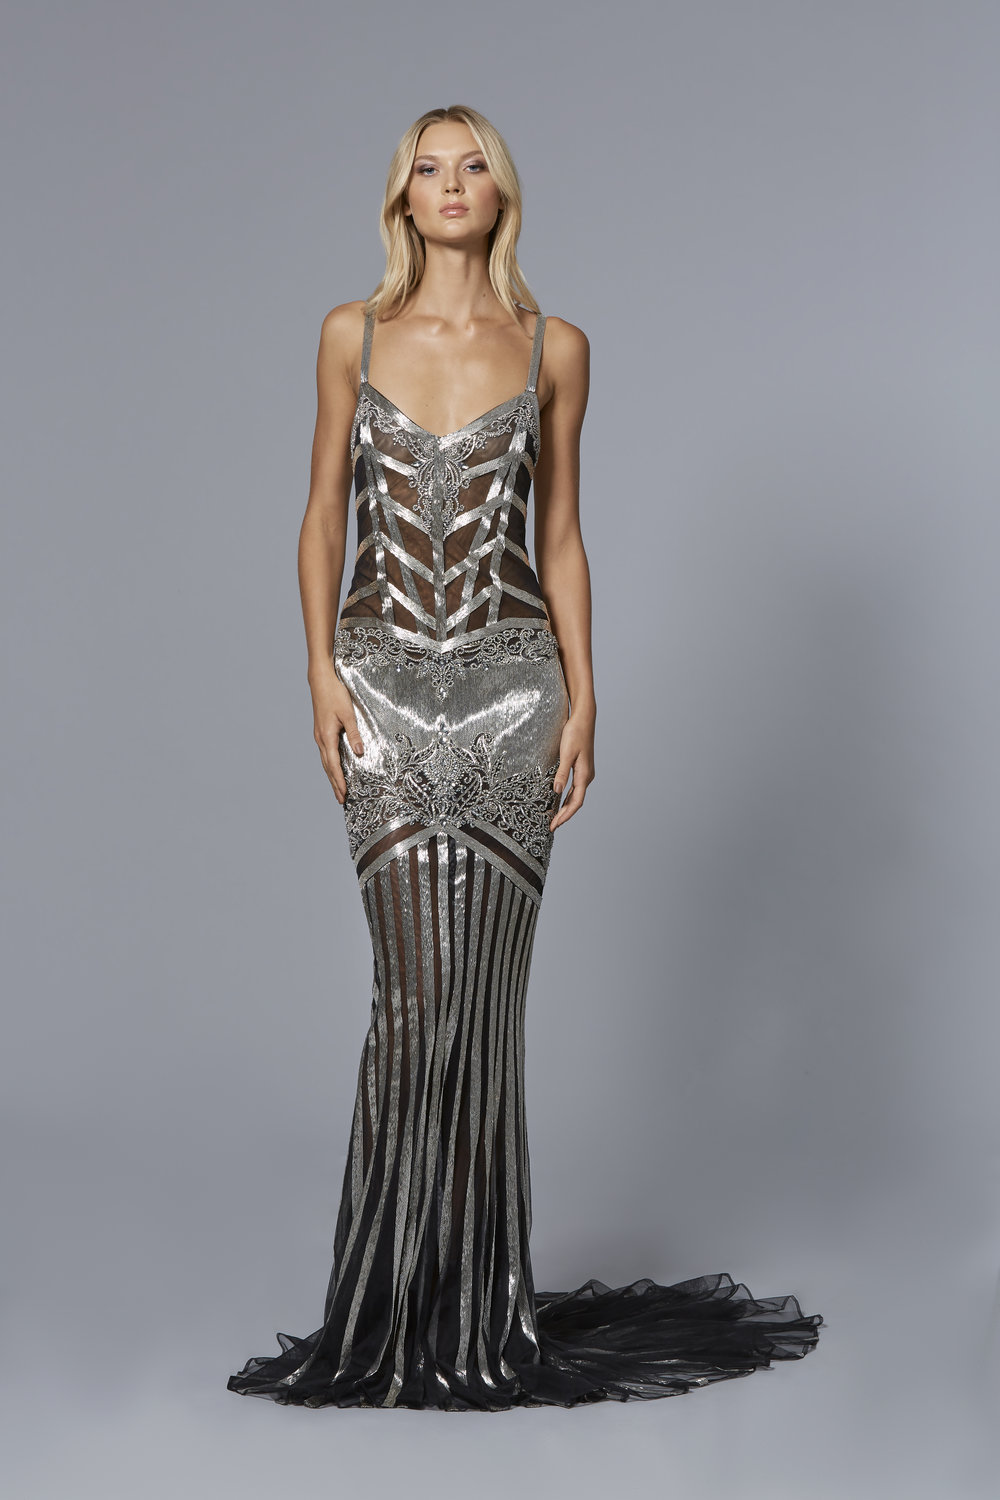 CLAUDIO CINA   LOOK 3:  Embroidered Tulle Gown in Gunmetal Bugle Beads & Crystal Stones